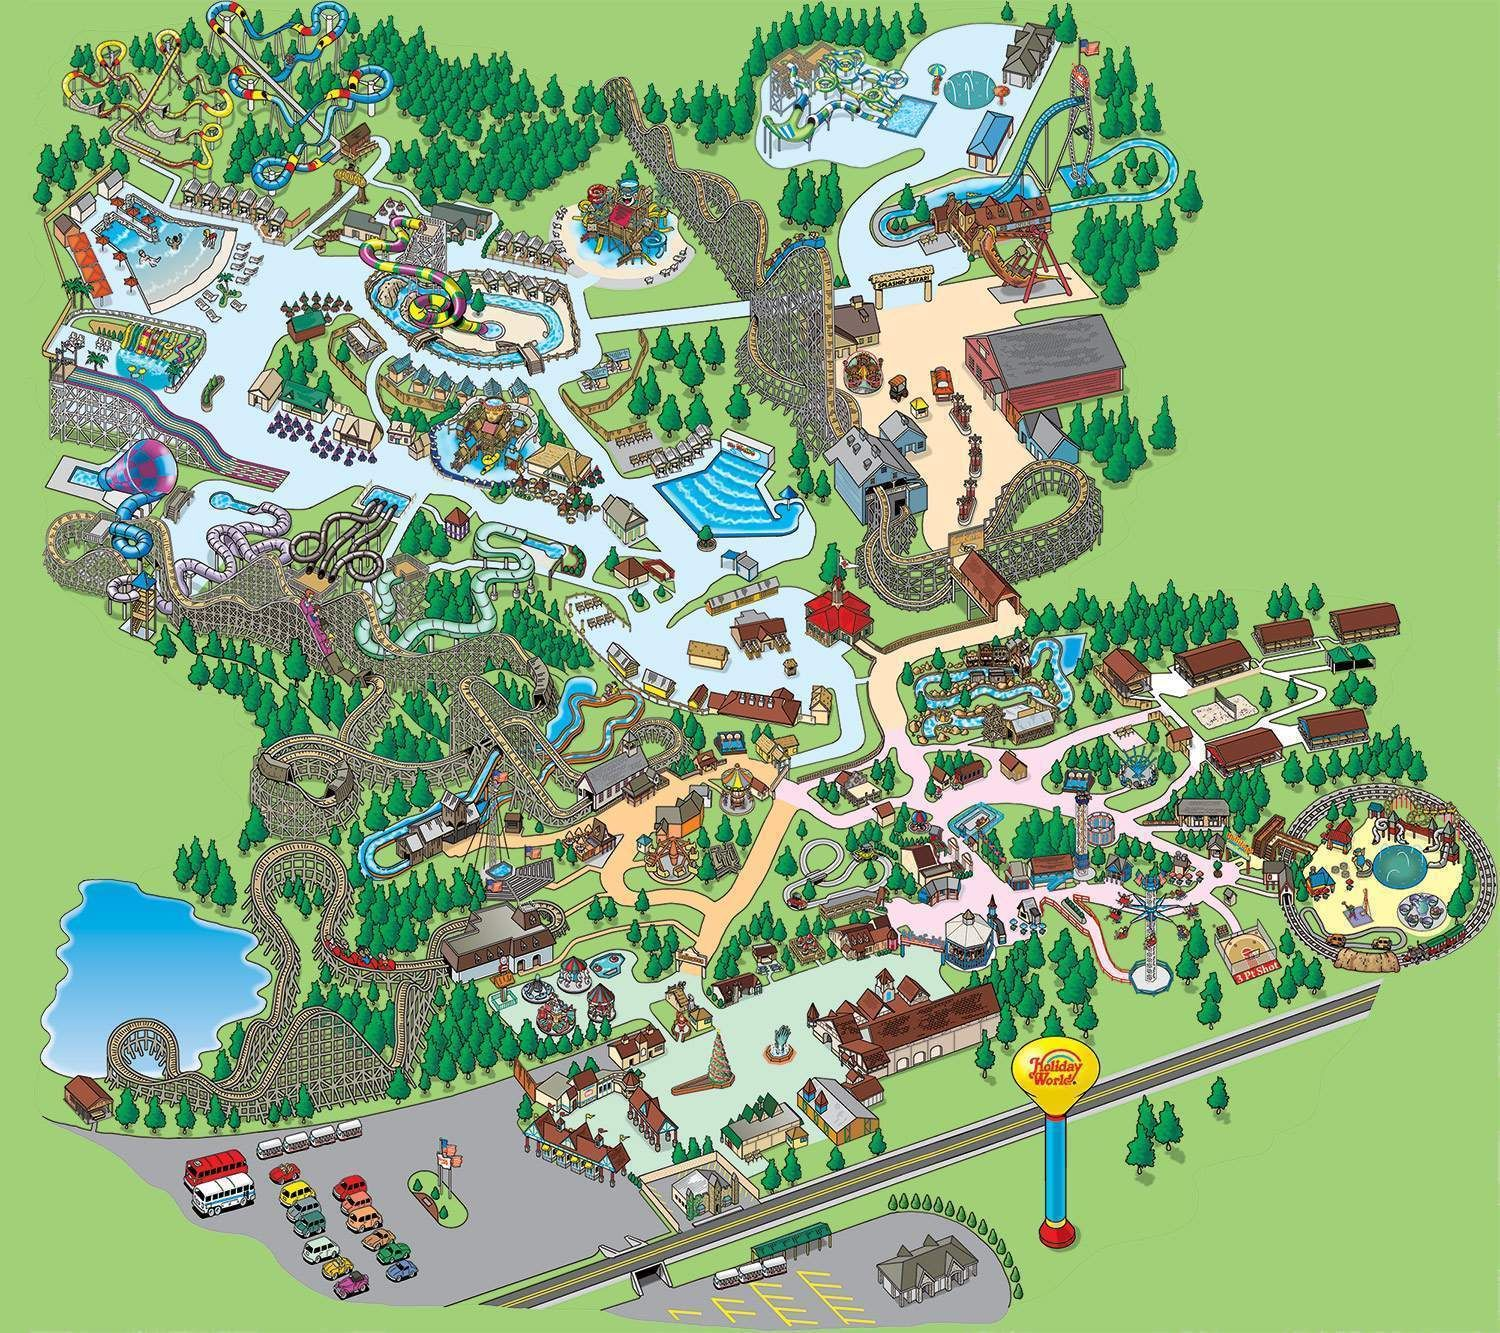 Splashin' Safari Park Map | Travel: For my thrill seeking youngest